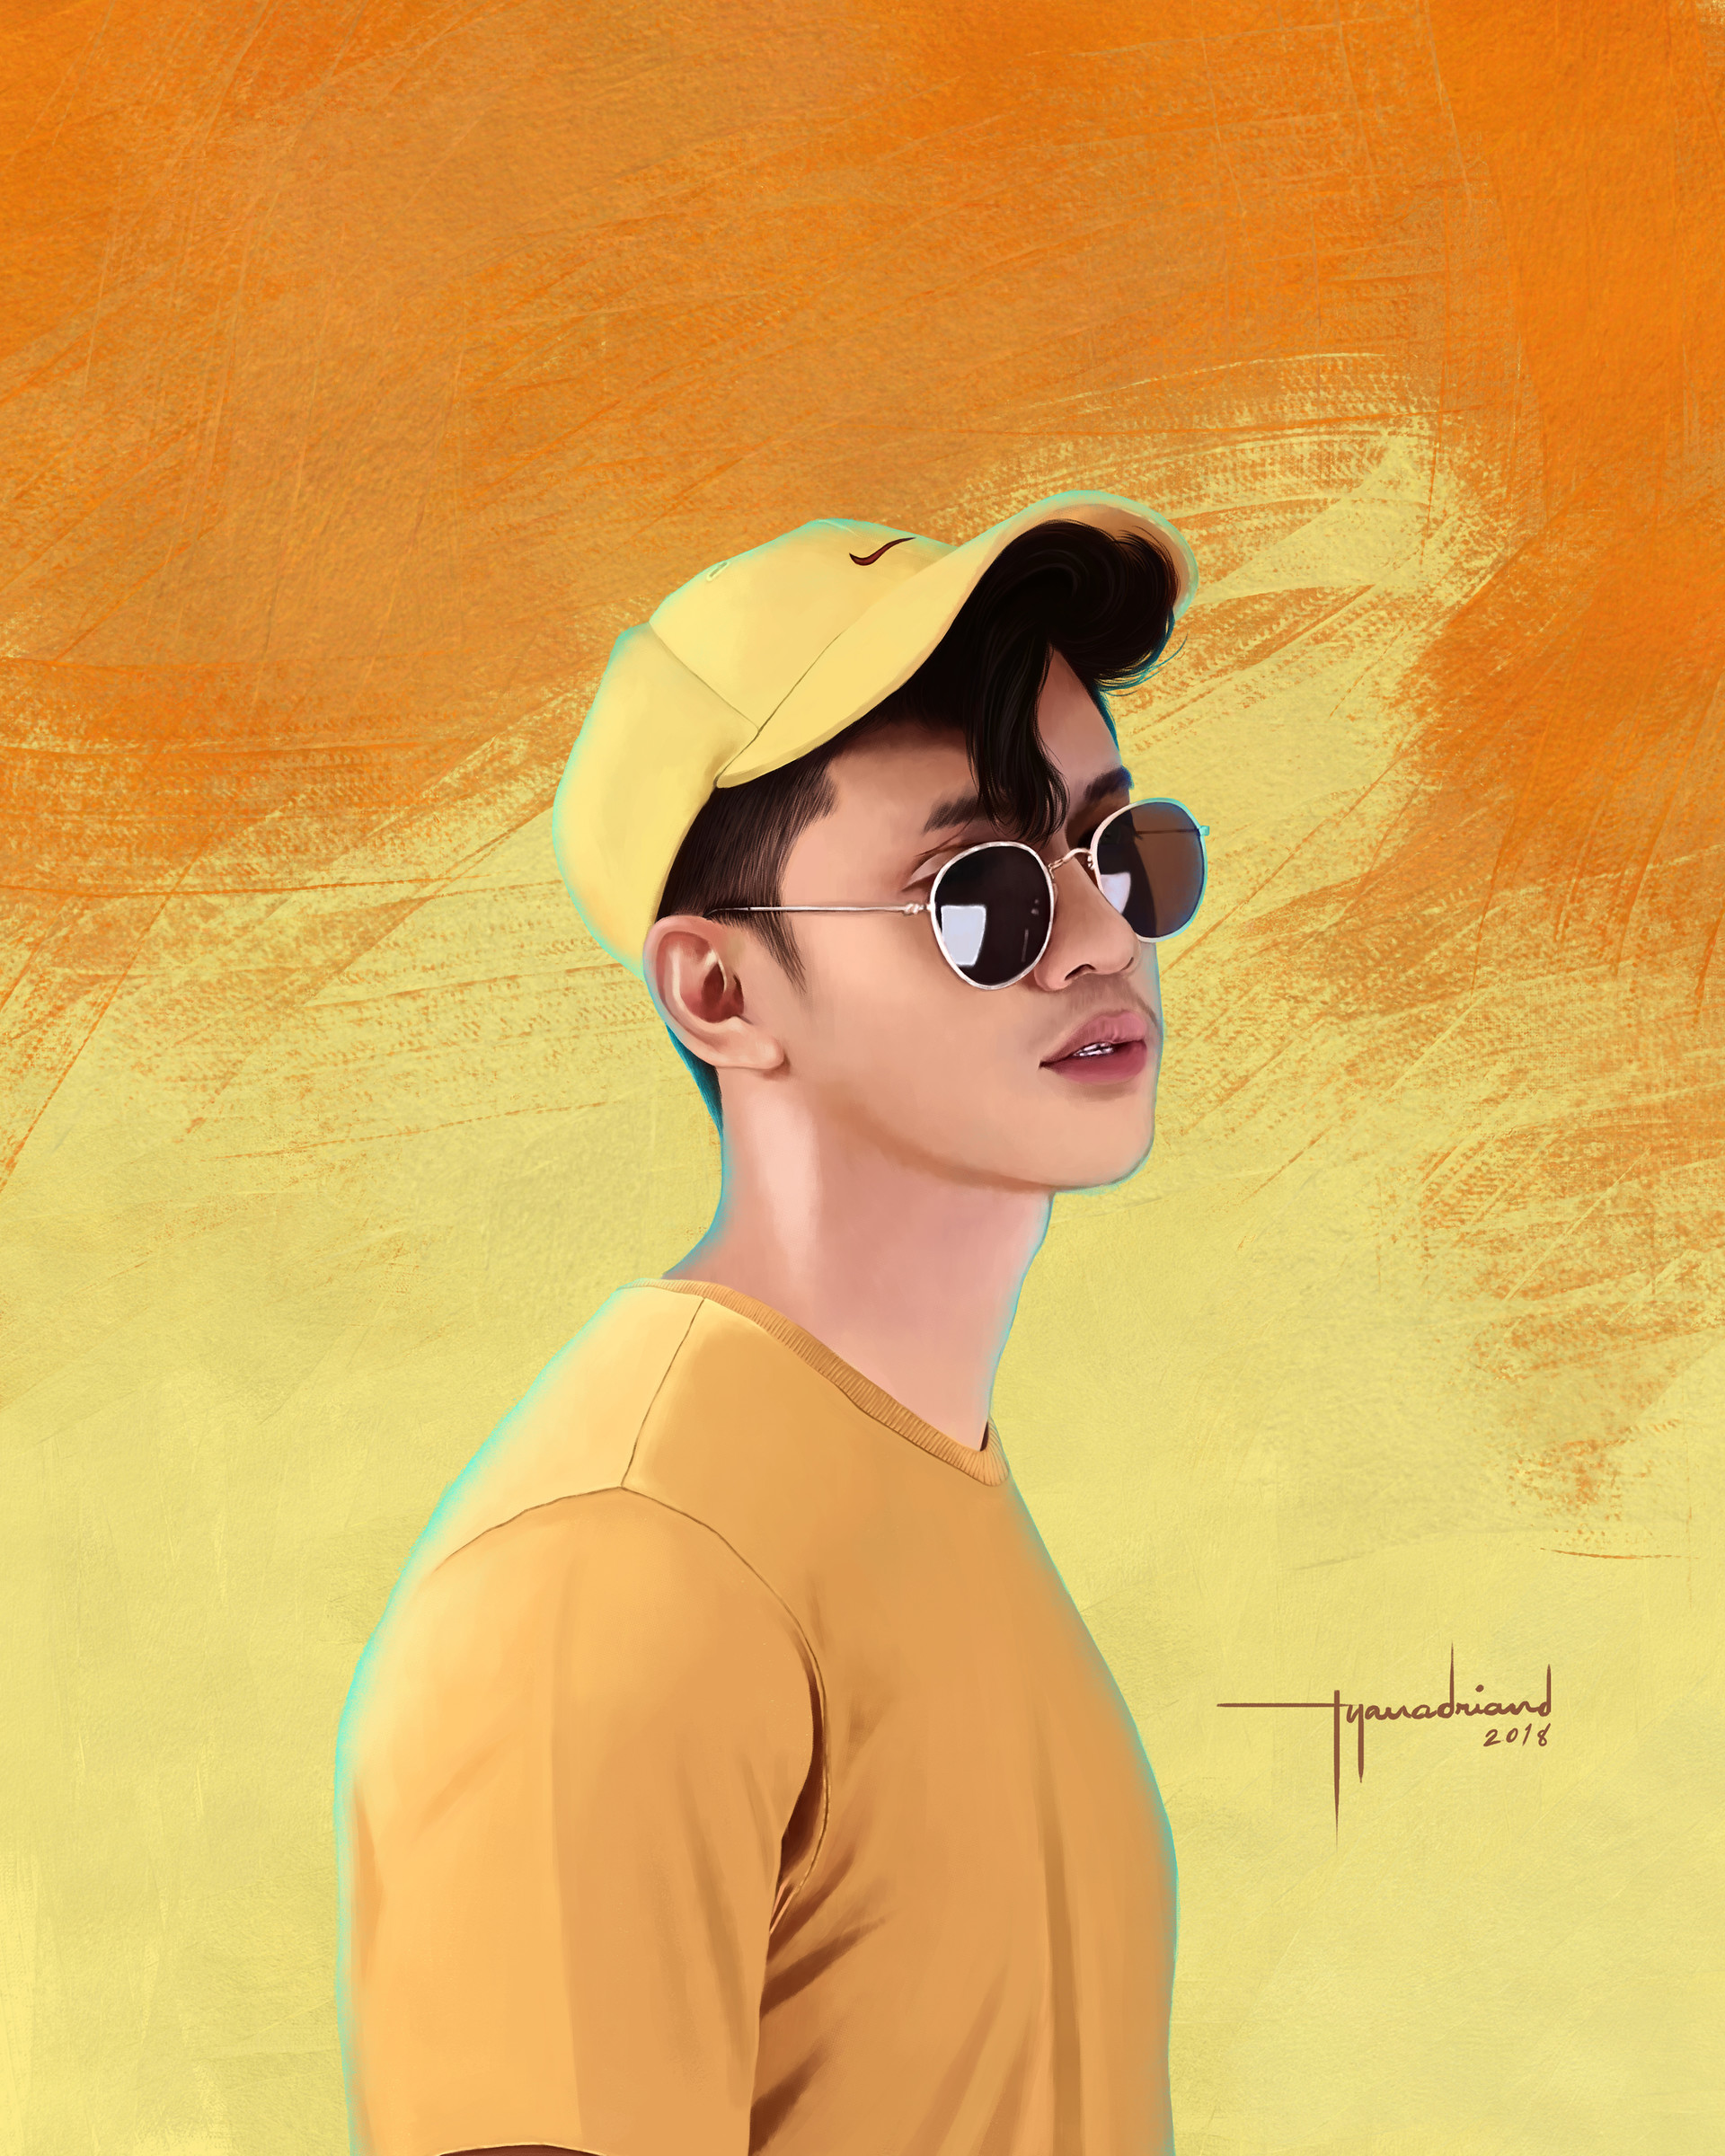 Rye adriano david guison painting lowres